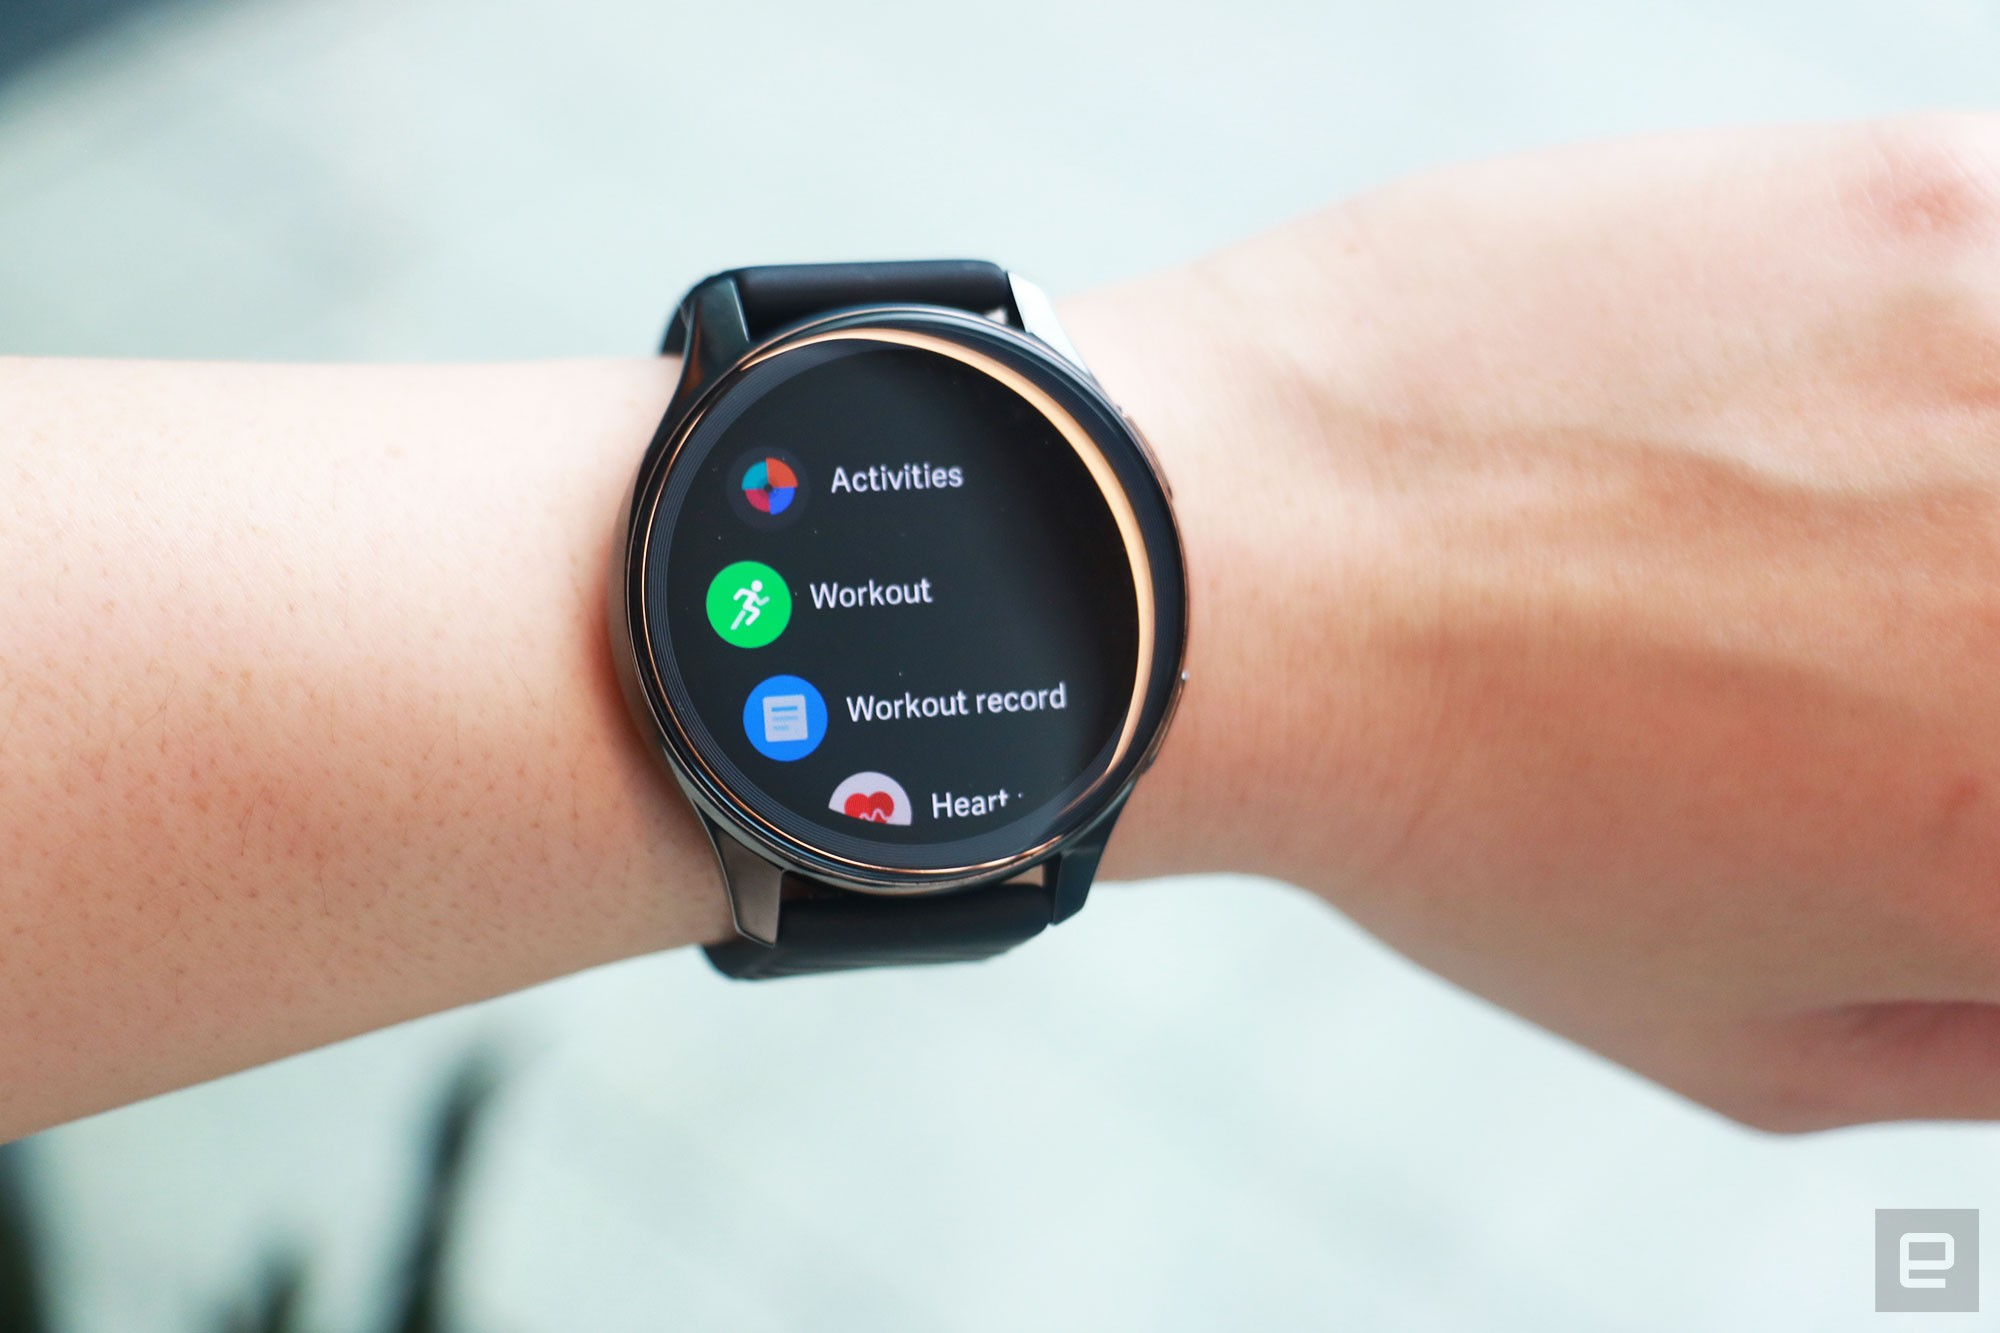 <p>OnePlus Watch review photos. OnePlus Watch on a wrist with display showing a list of apps including Activities, Workout, Workout record and Heart...</p>